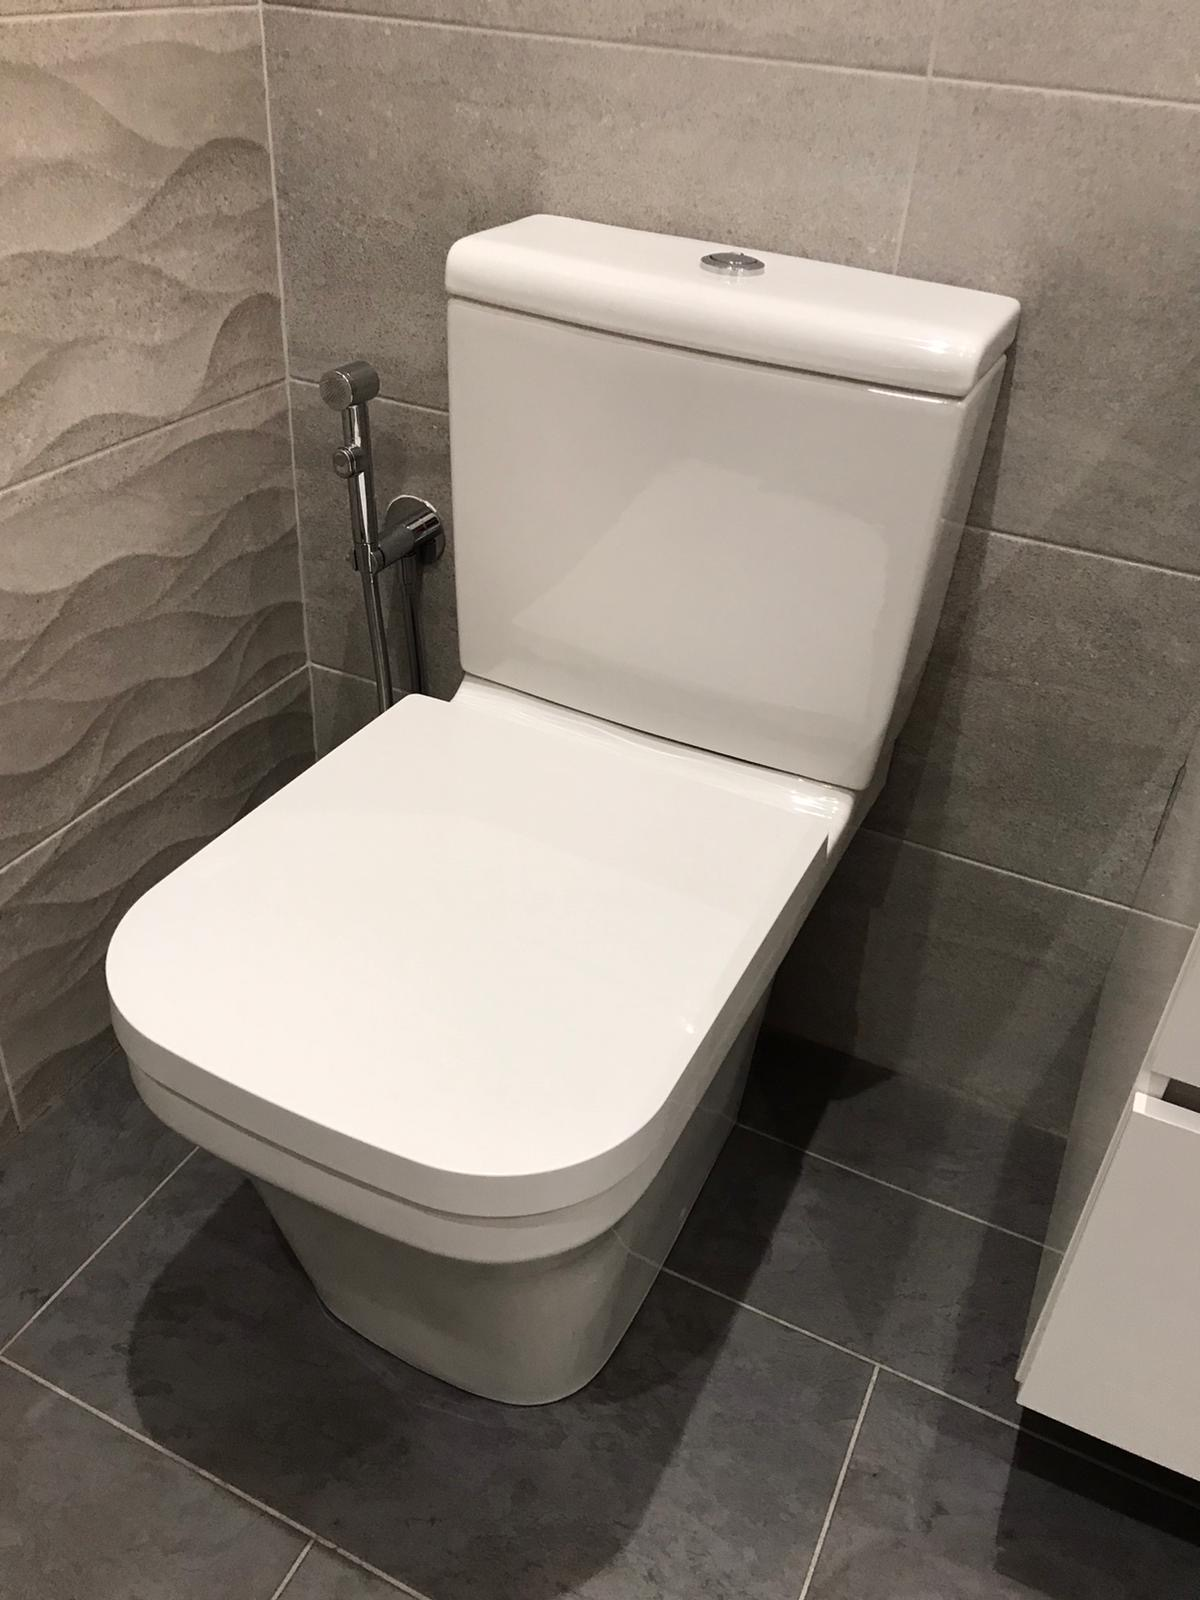 DuravitPS Comforts WC | Wakefield Bathrooms